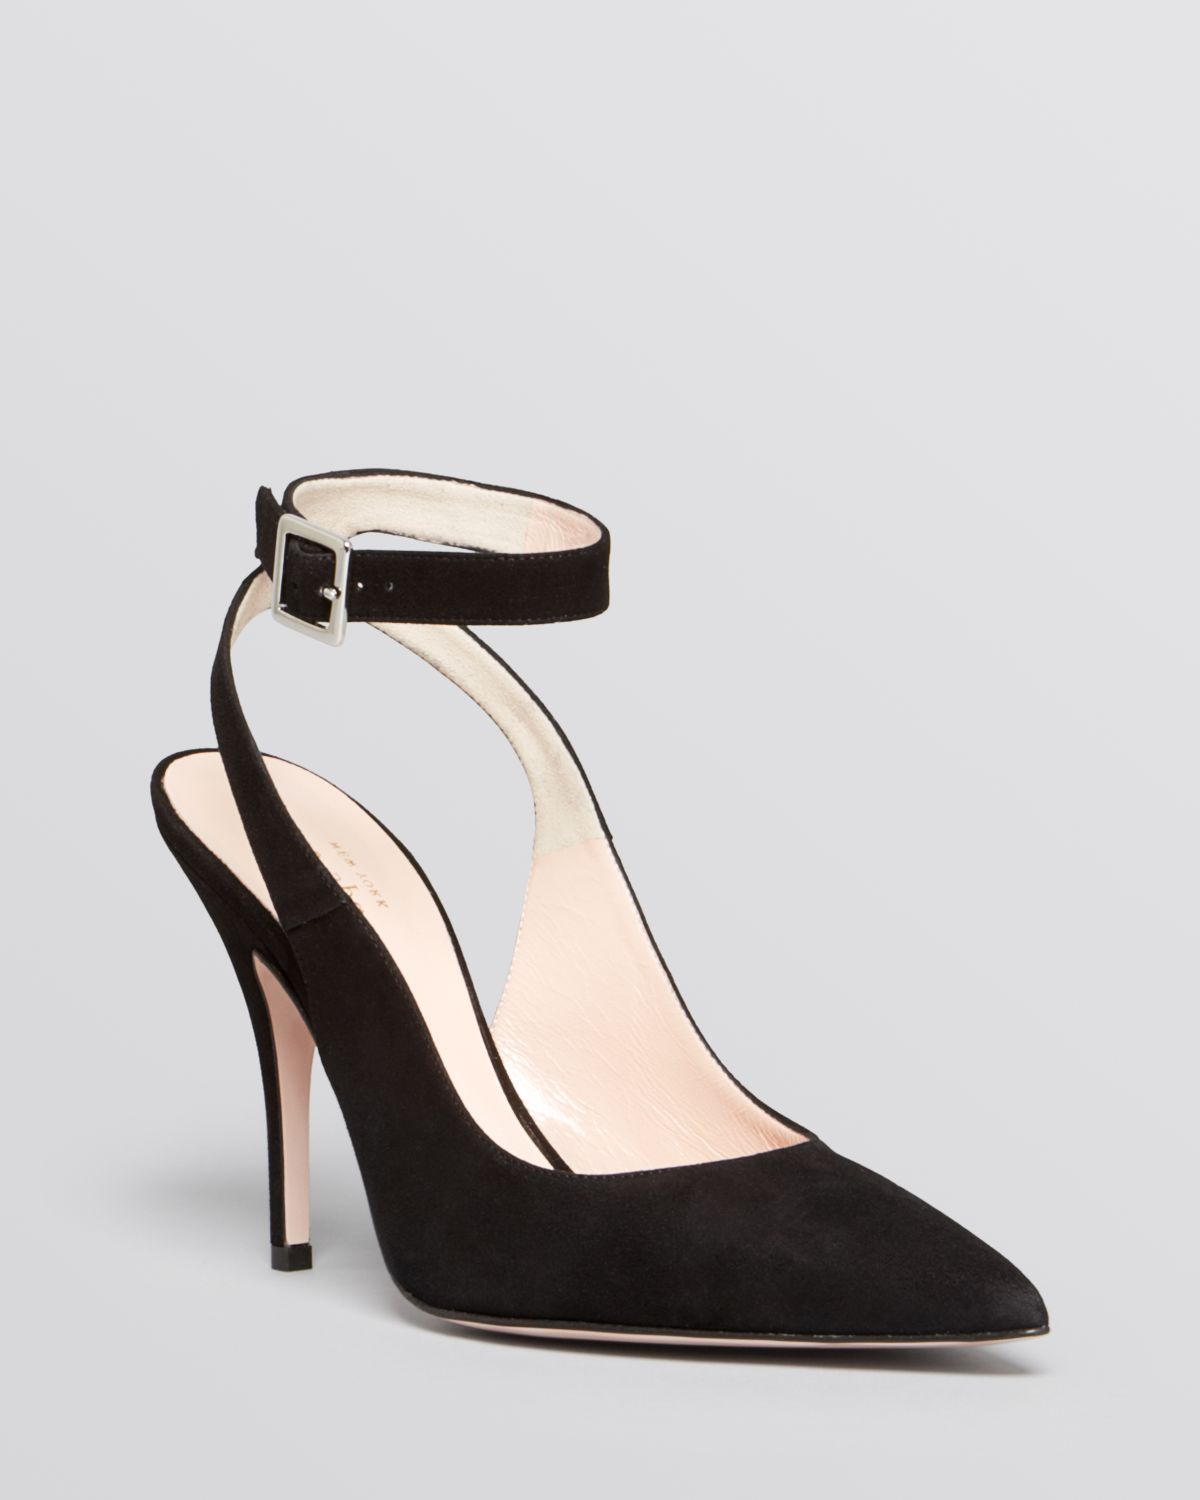 47e1bd7f91fc Lyst - Kate Spade Pointed Toe Ankle Strap Pumps - Luminous High Heel ...